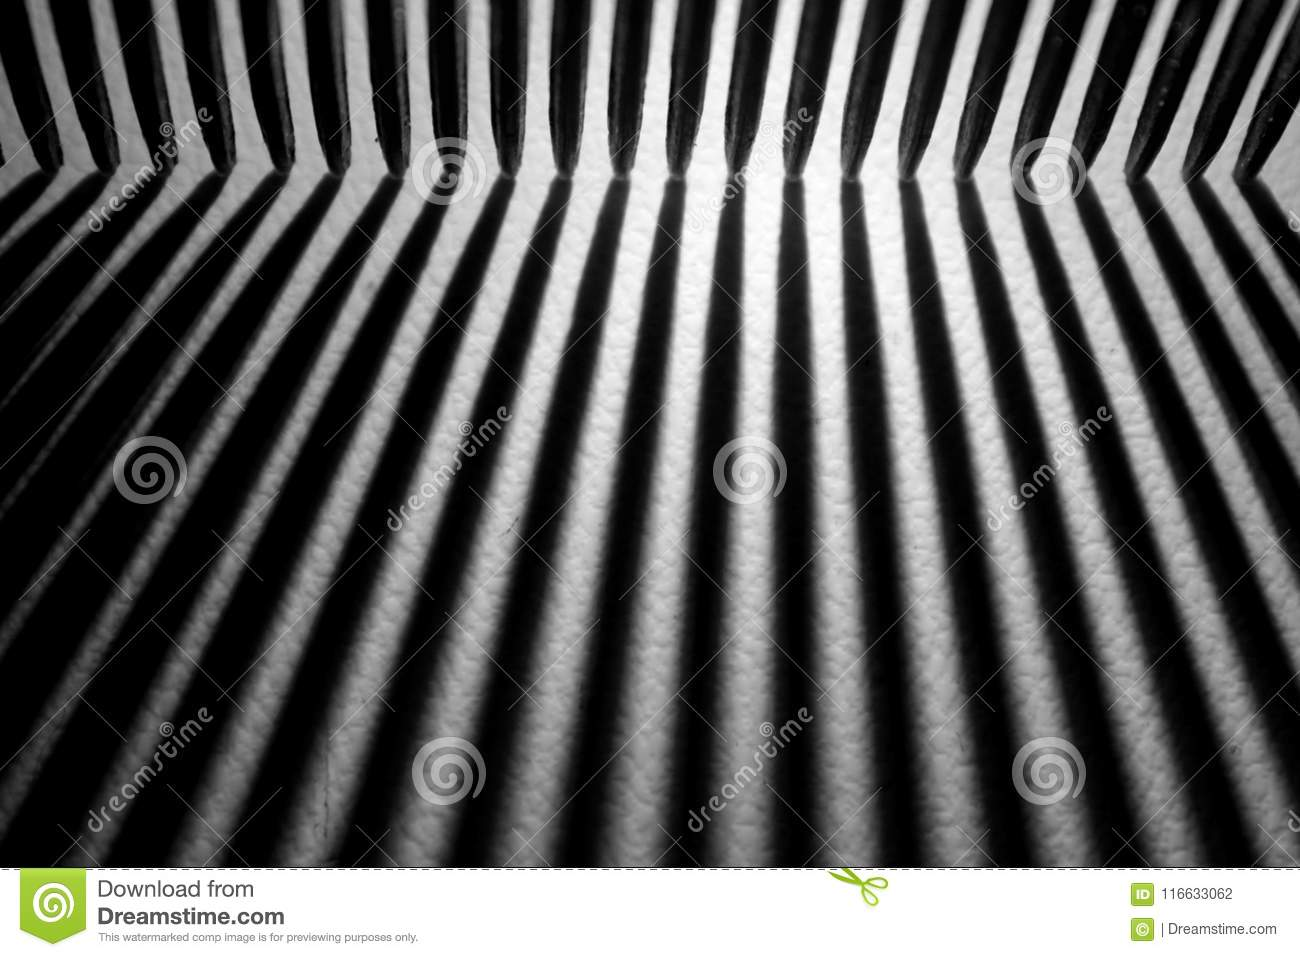 Abstract black and white lines and shadows on a white background